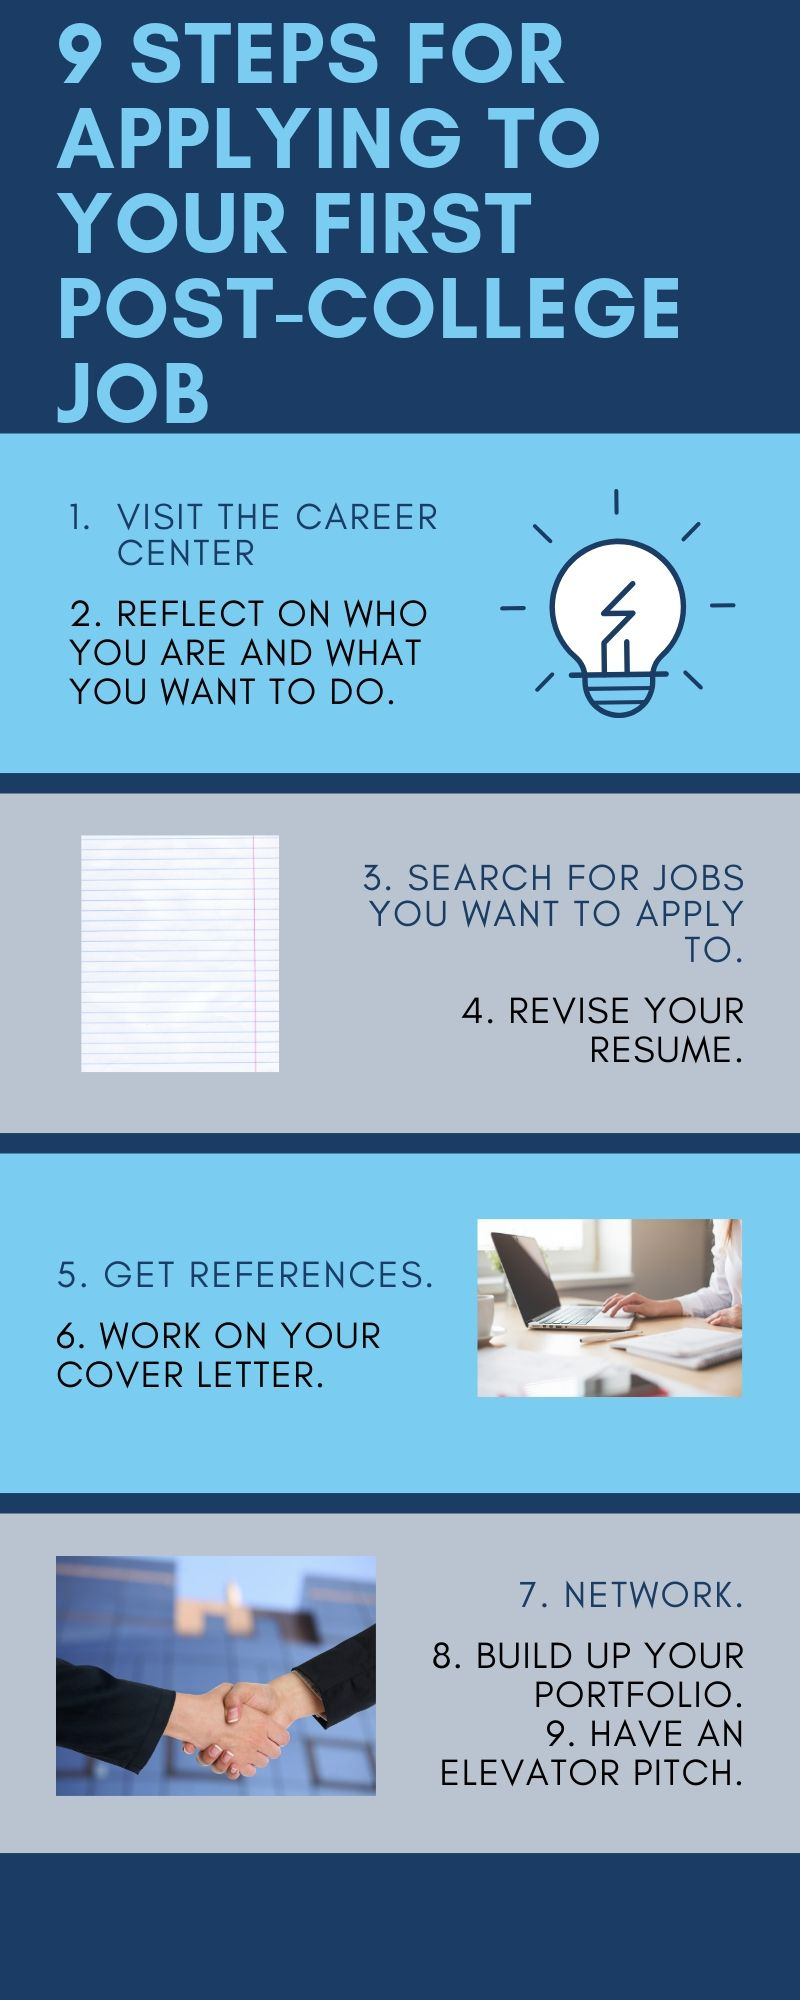 infographic, post-college job, steps